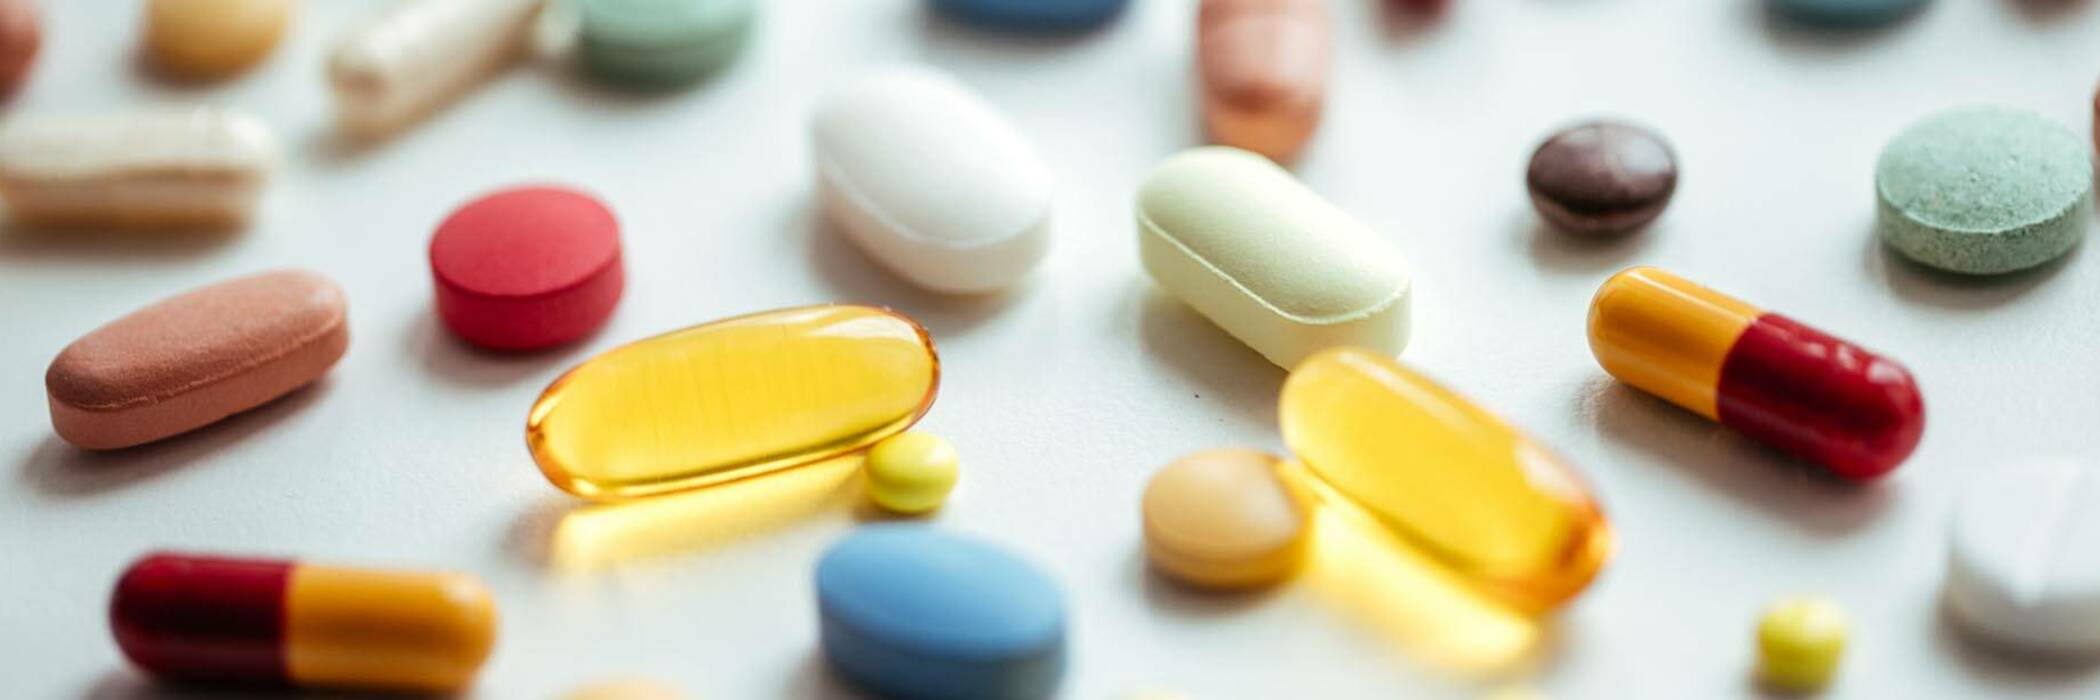 Pills, tablets and capsules of various shapes and colours.